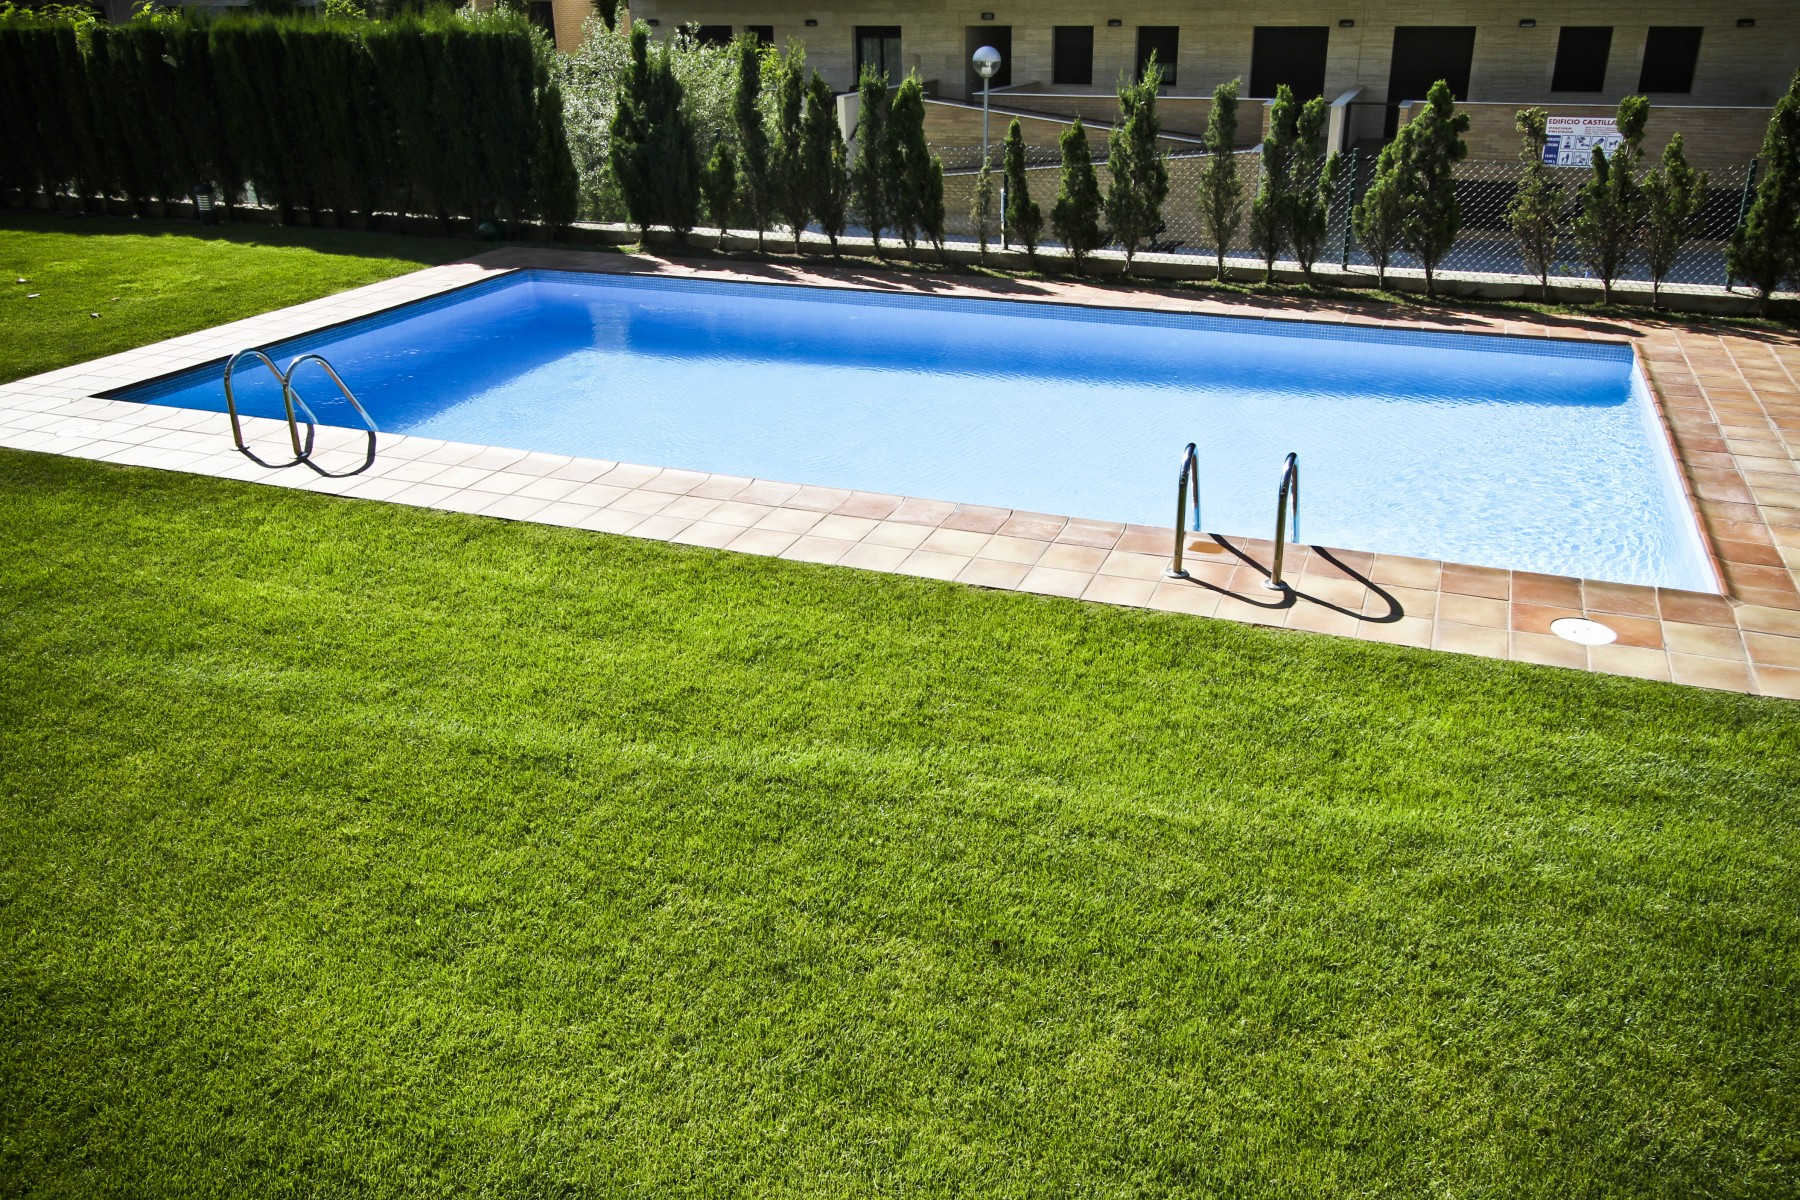 Rosa Sensat With Communal Pool And Terrace